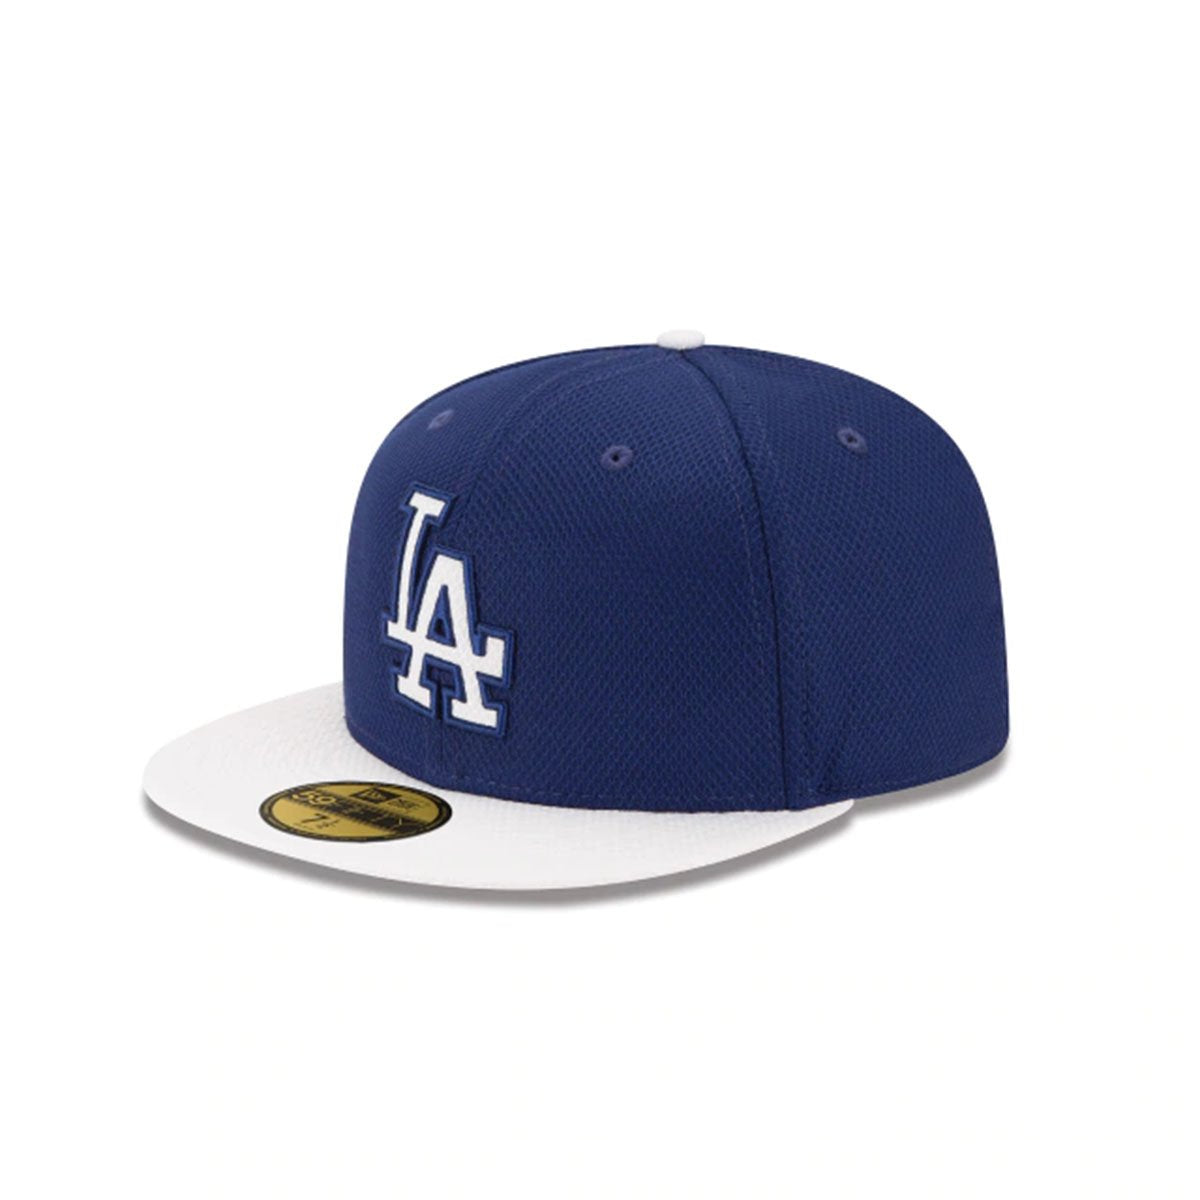 LOS ANGELES DODGERS 59FIFTY FITTED BLUE/WHITE